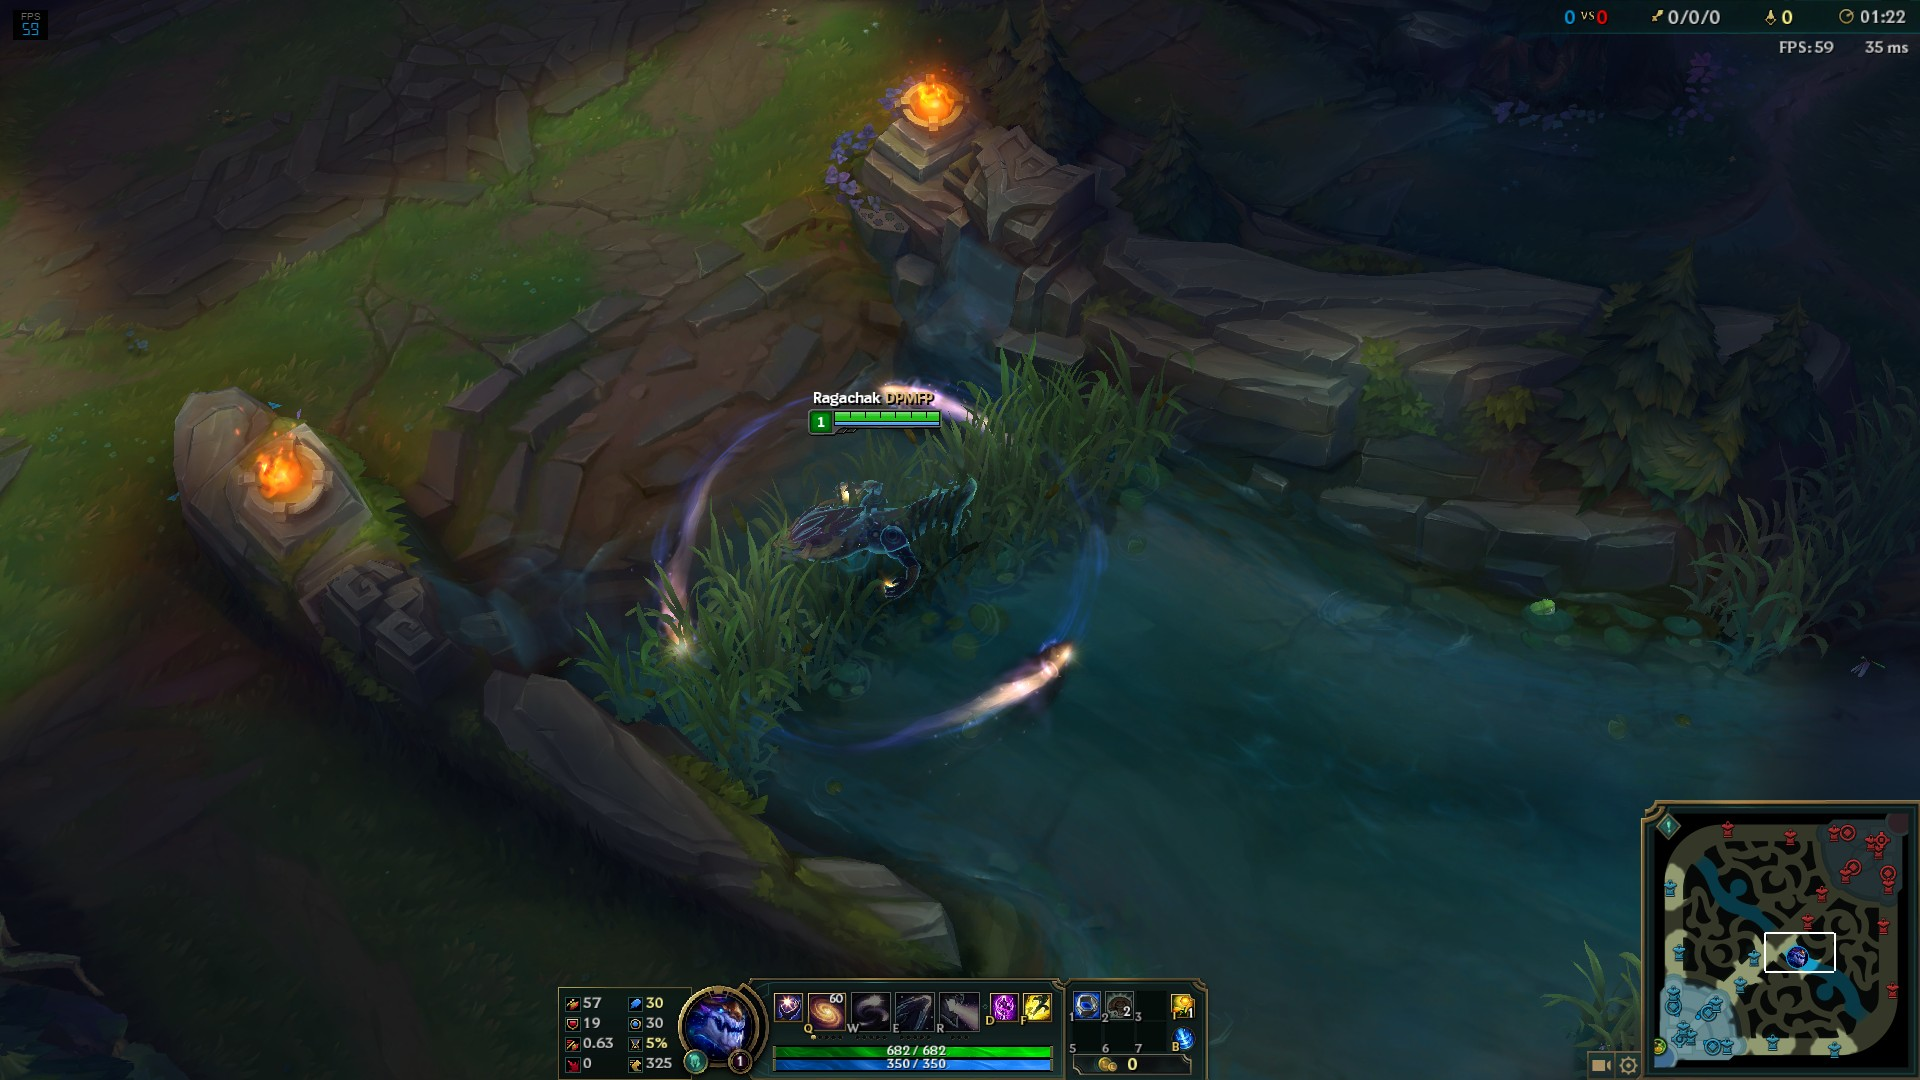 FULL HD PICTURES WALLPAPER      league of legends gameplay Make the most of your display with beautiful wallpapers and advanced  features  Choose one of your own  The botlane bush https boards na  leagueoflegends